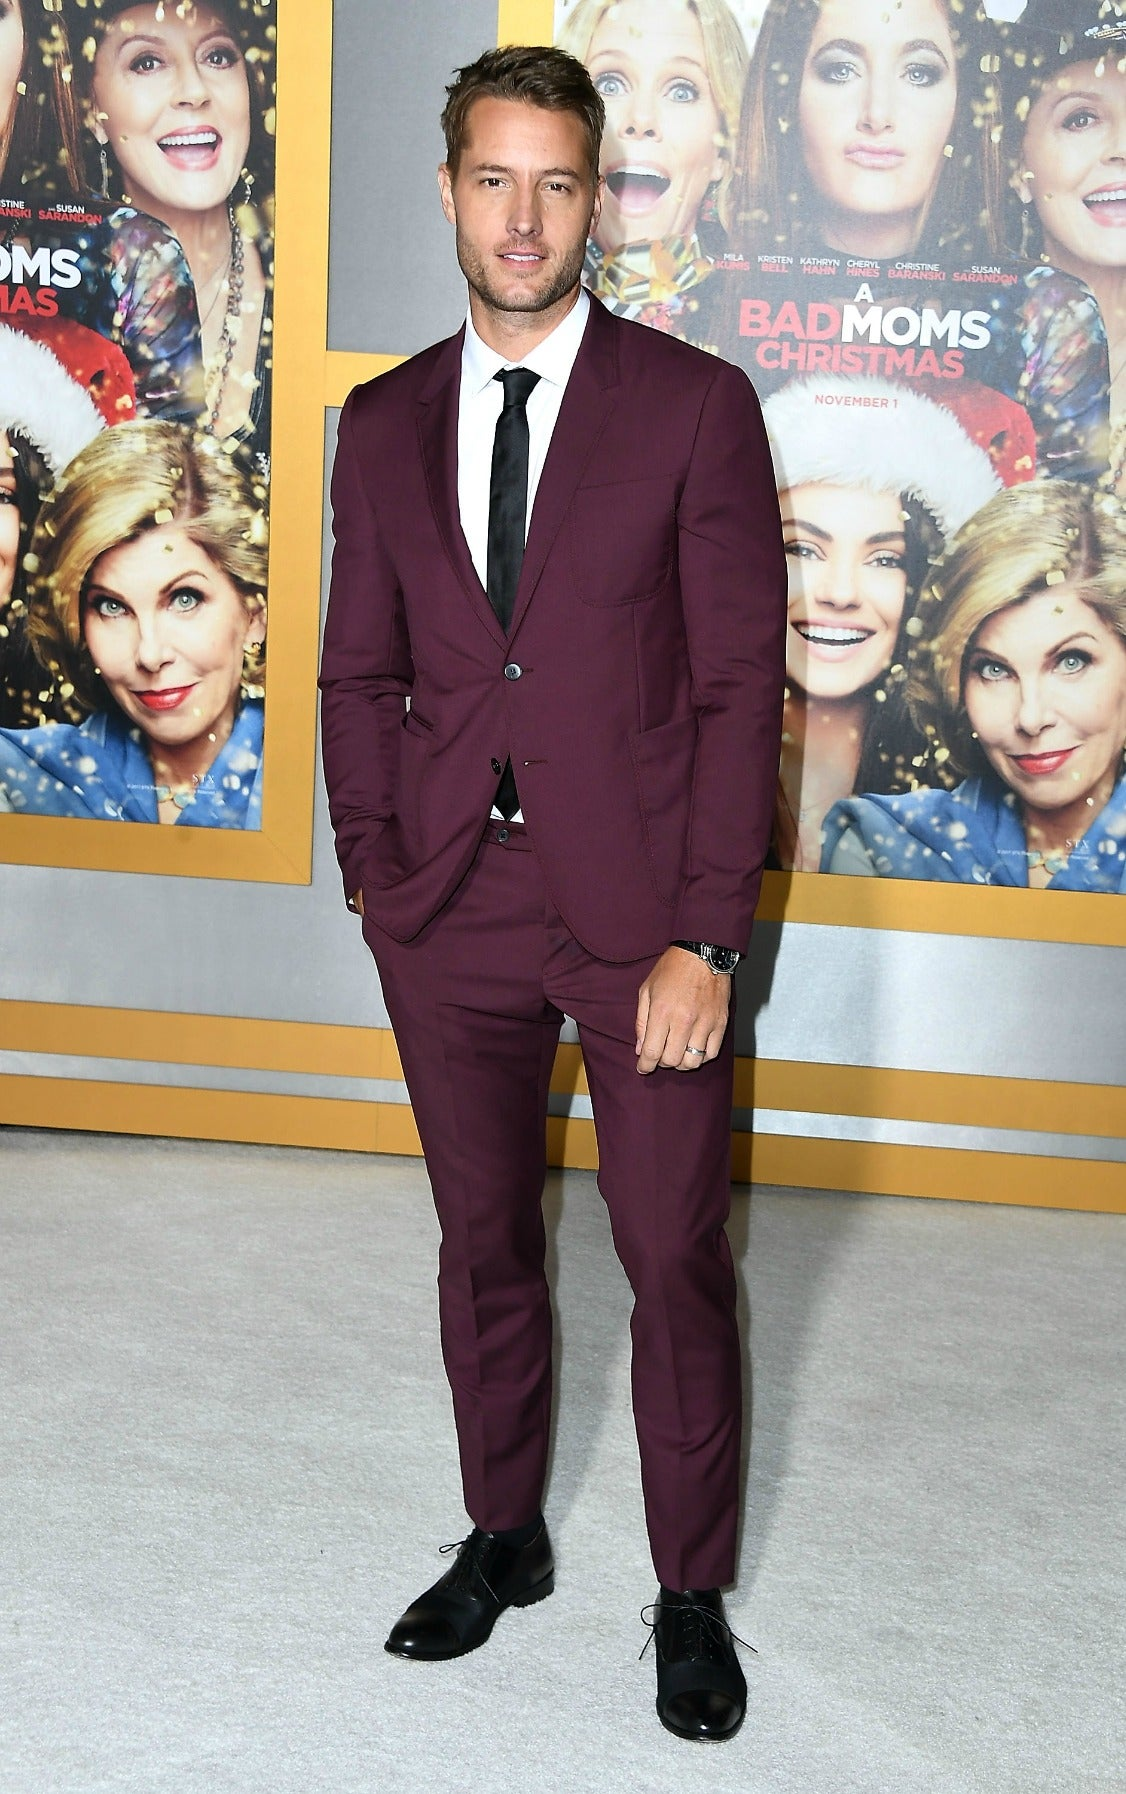 Justin Hartley at Bad Moms Christmas Premiere